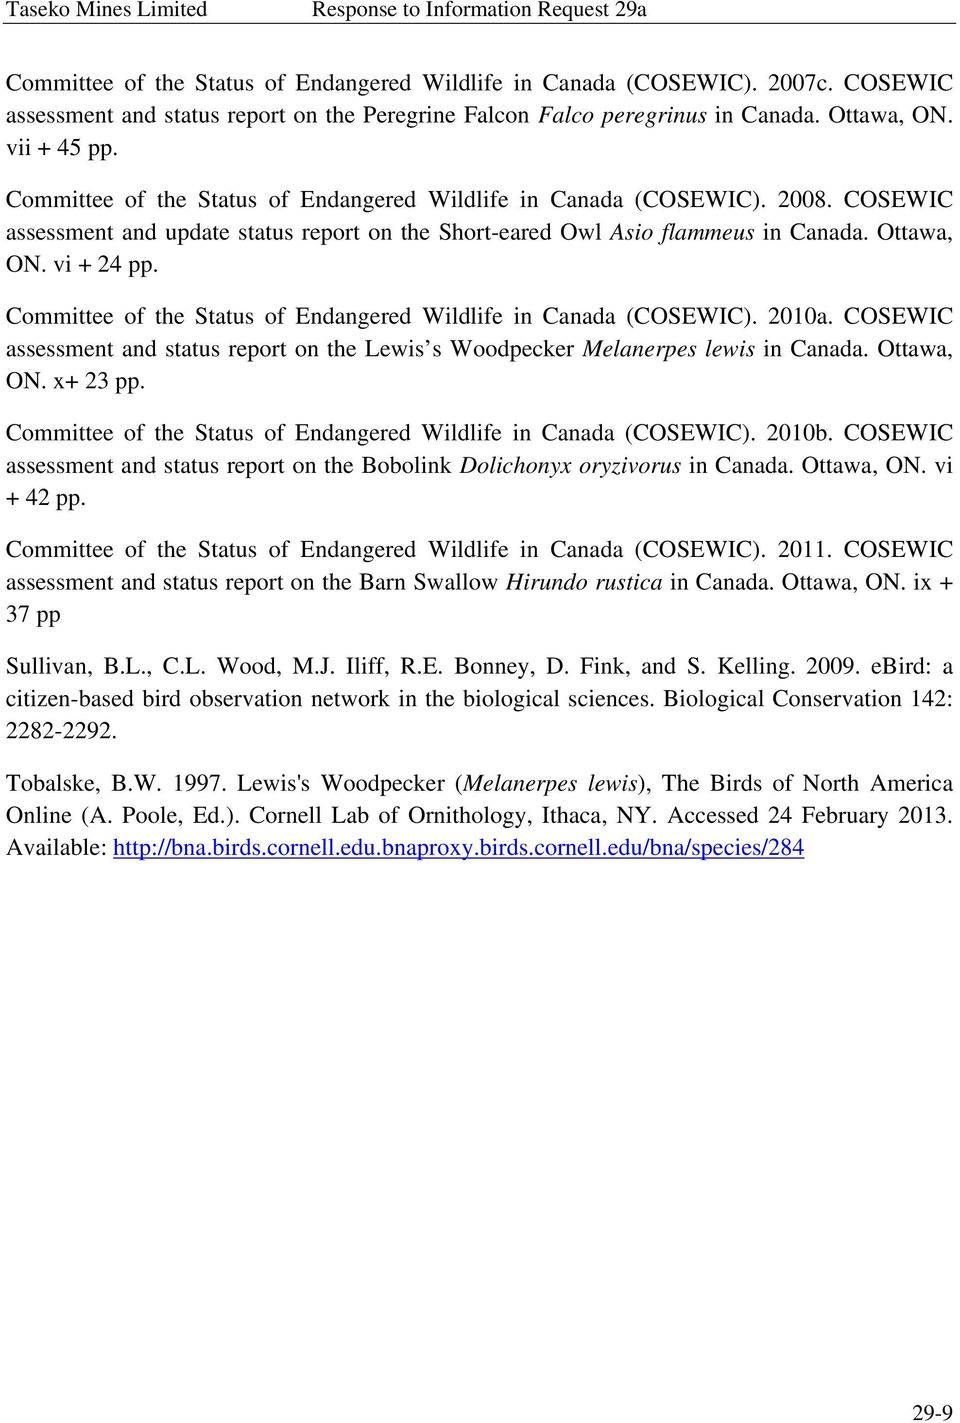 Ottawa, ON. vi + 24 pp. Committee of the Status of Endangered Wildlife in Canada (COSEWIC). 2010a. COSEWIC assessment and status report on the Lewis s Woodpecker Melanerpes lewis in Canada.